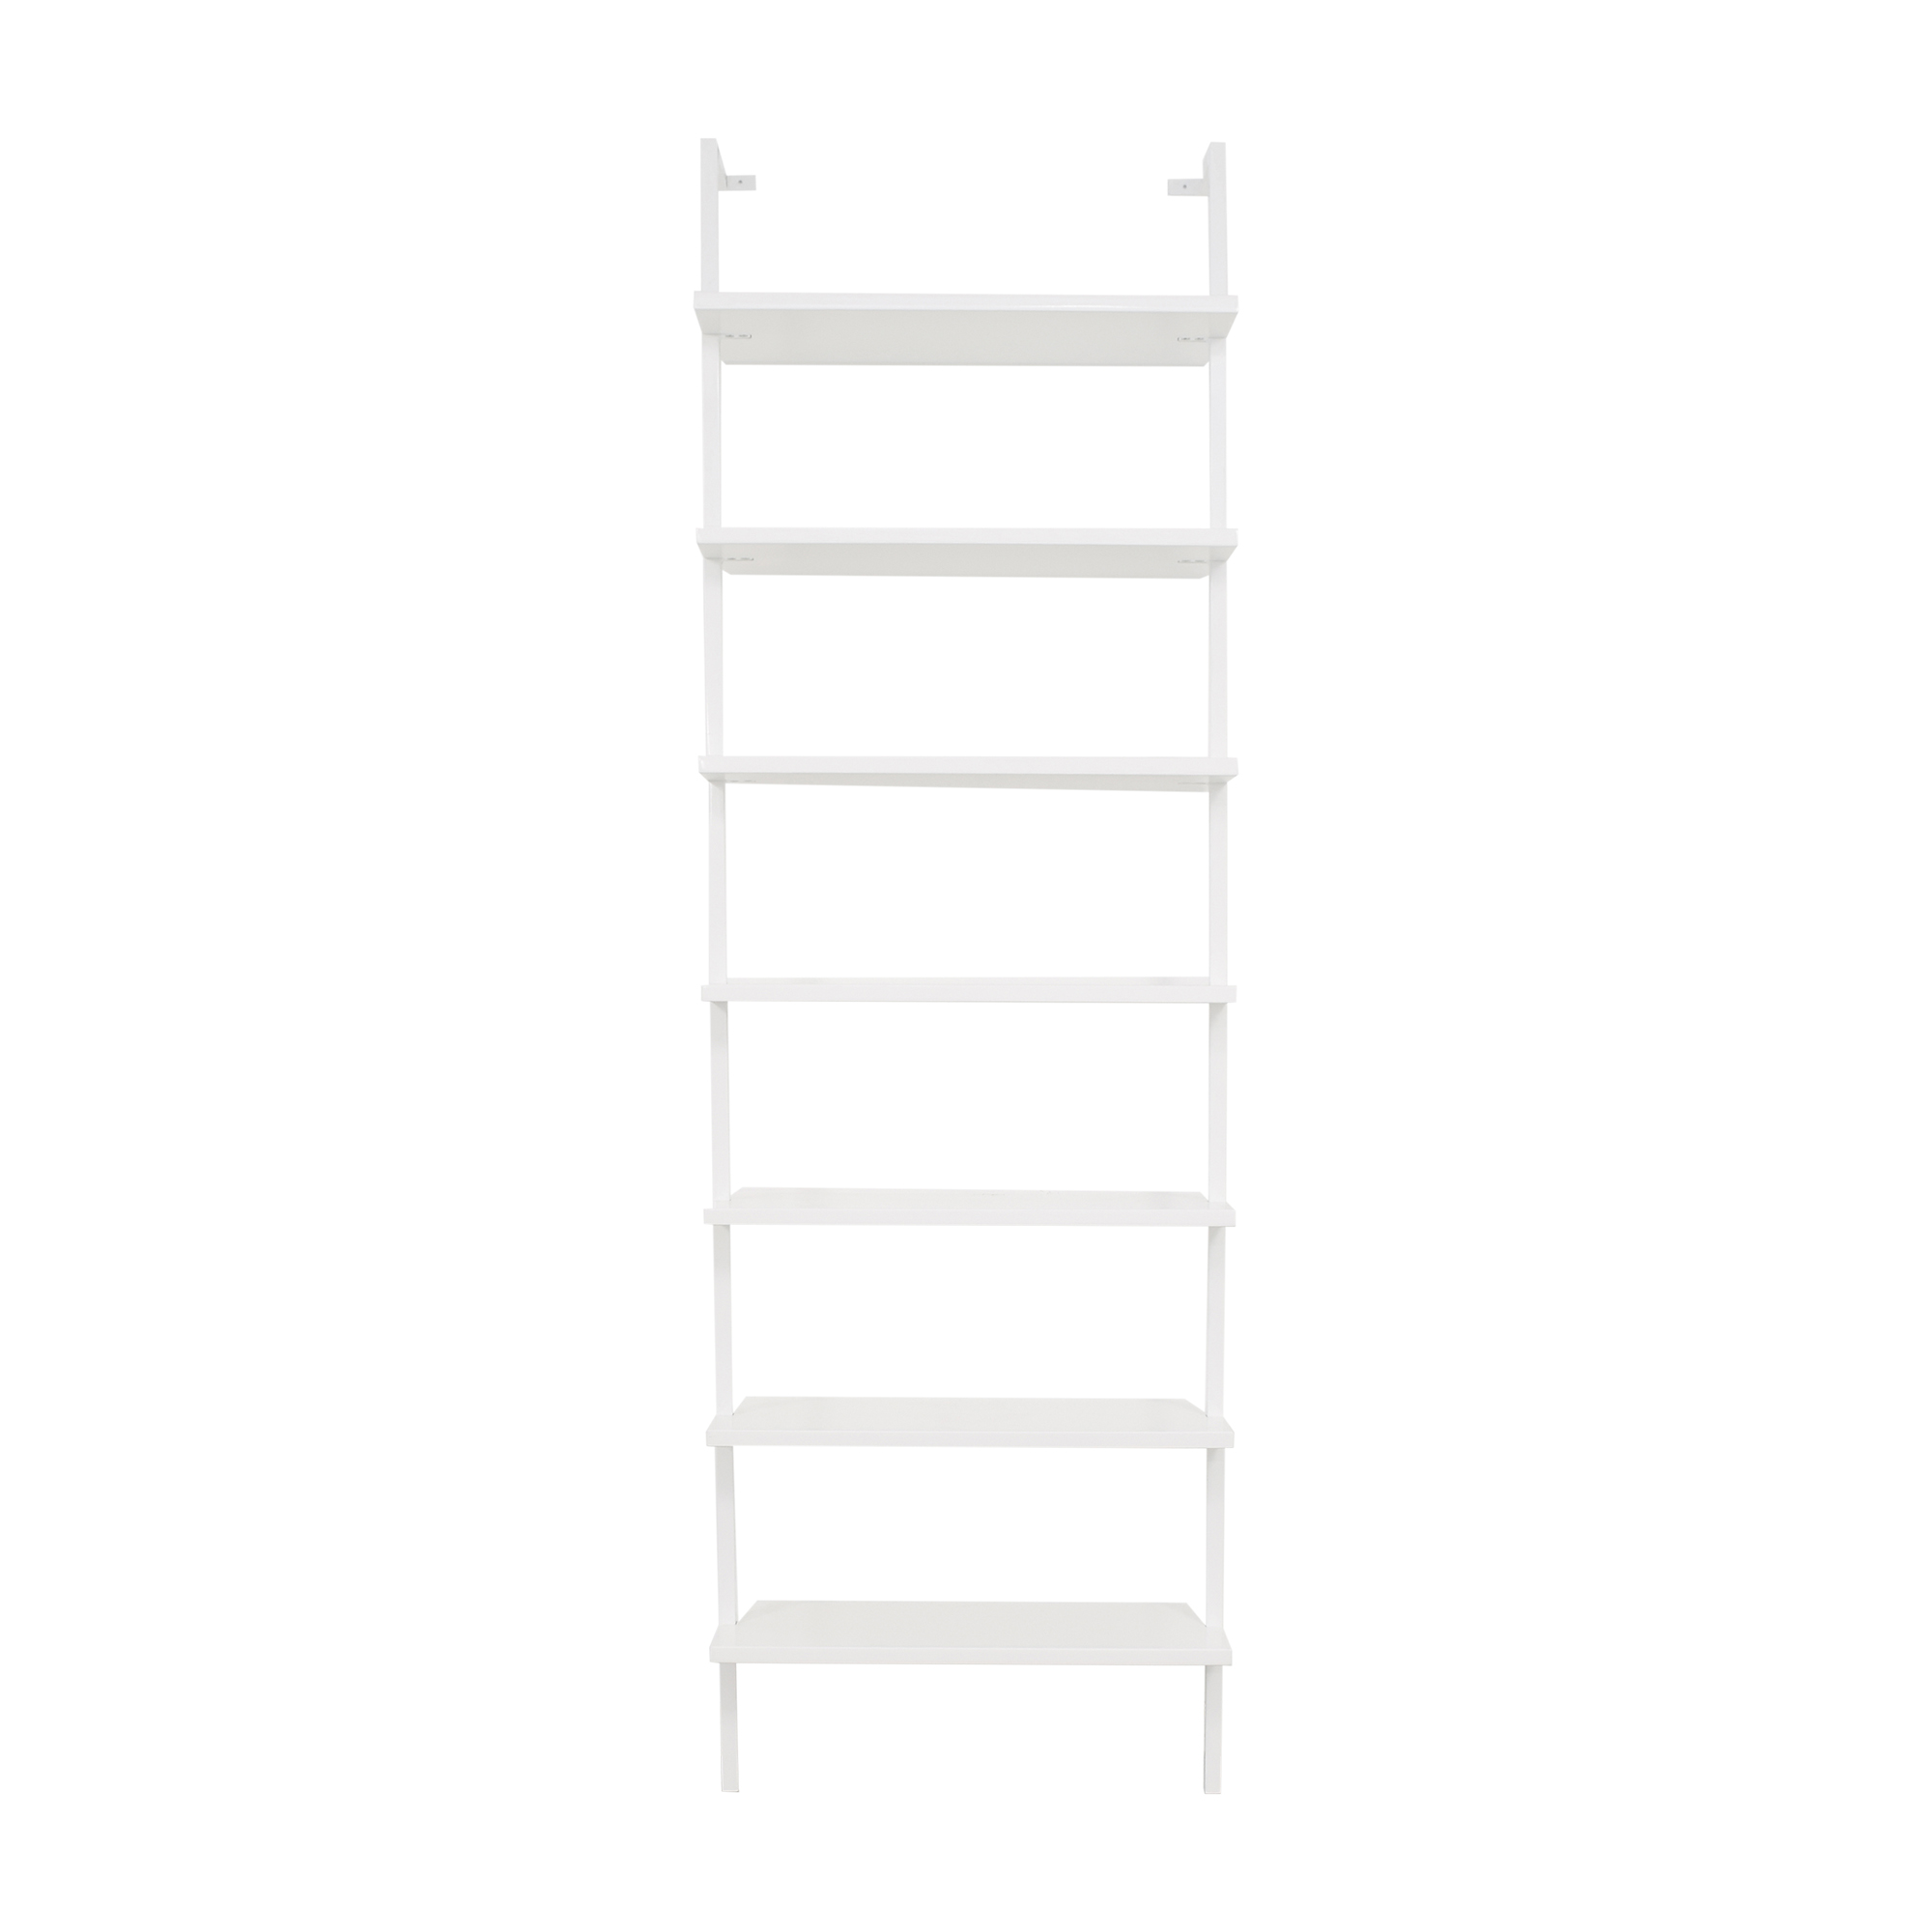 CB2 CB2 Stairway Wall Mounted Bookcase for sale